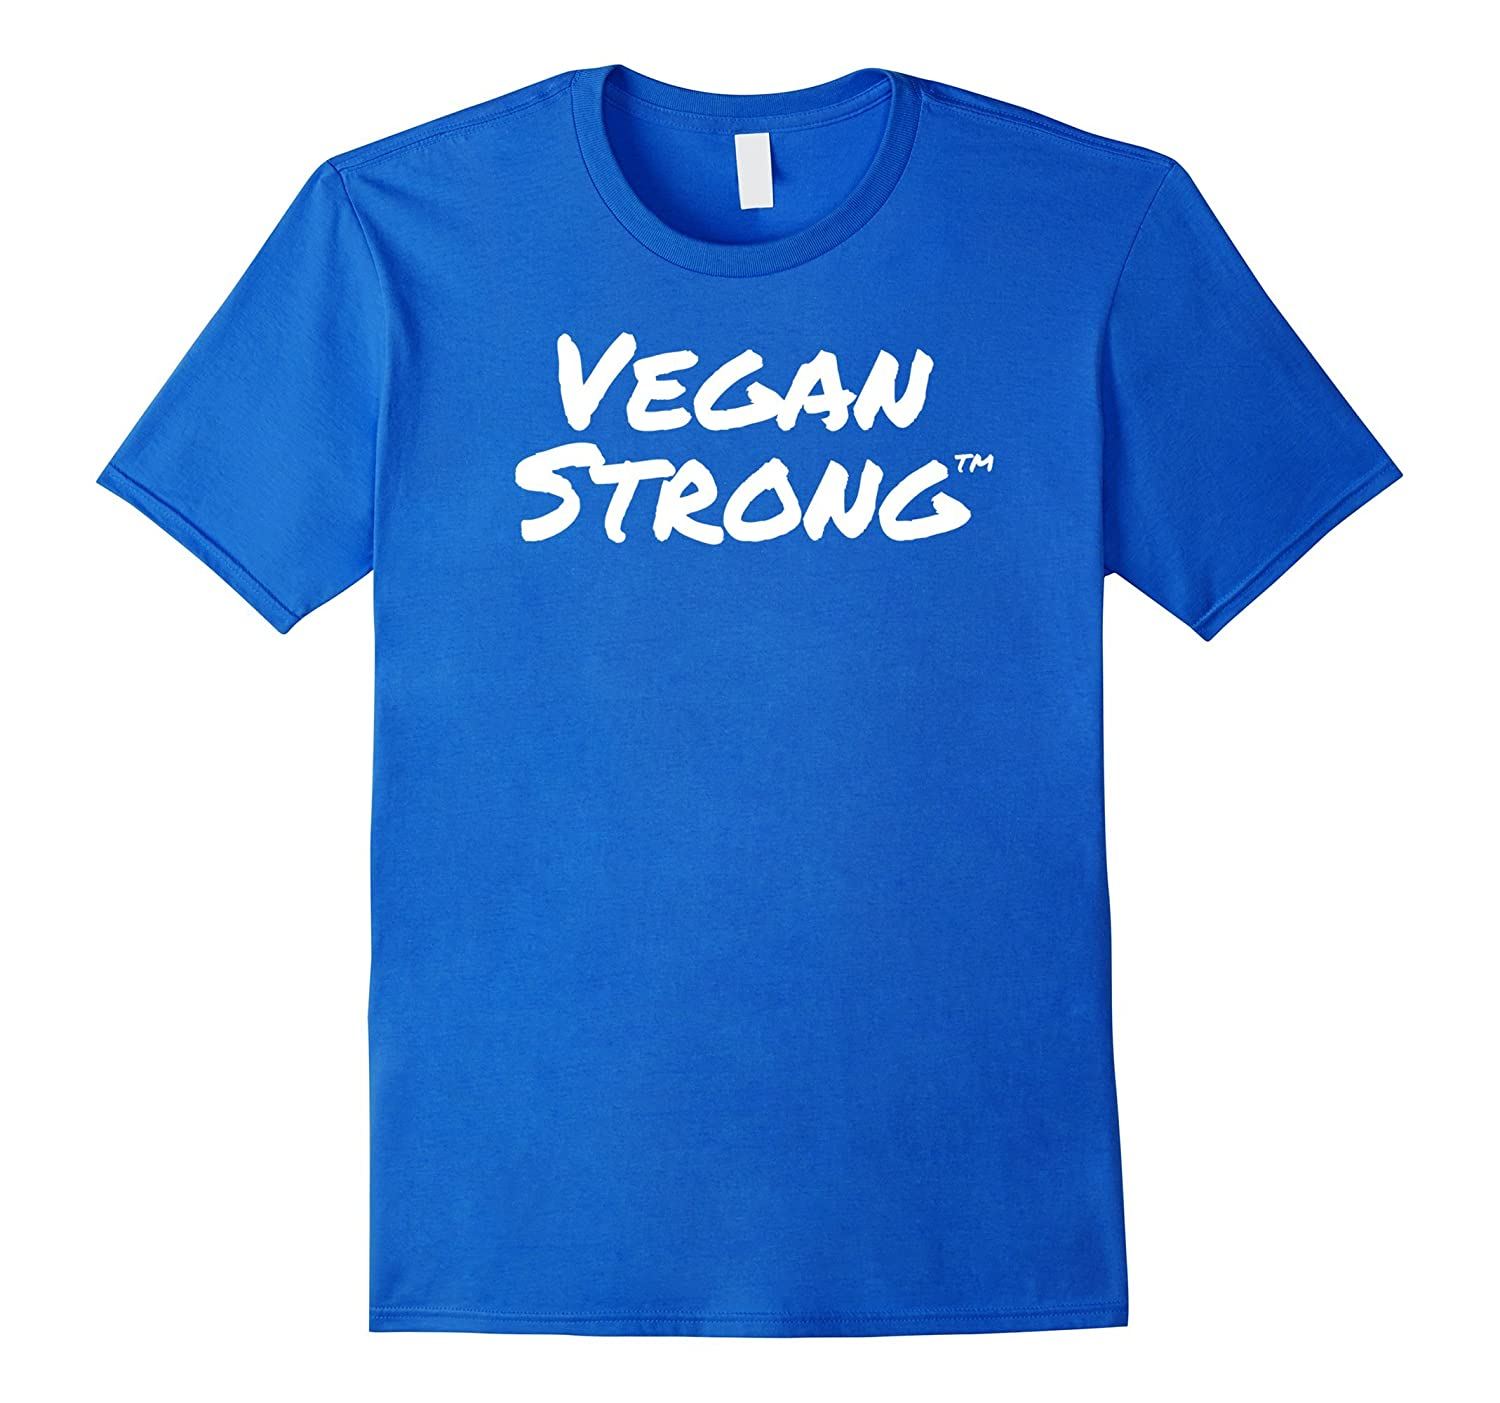 Official Vegan StrongTM T-Shirt for Men Women  Youth